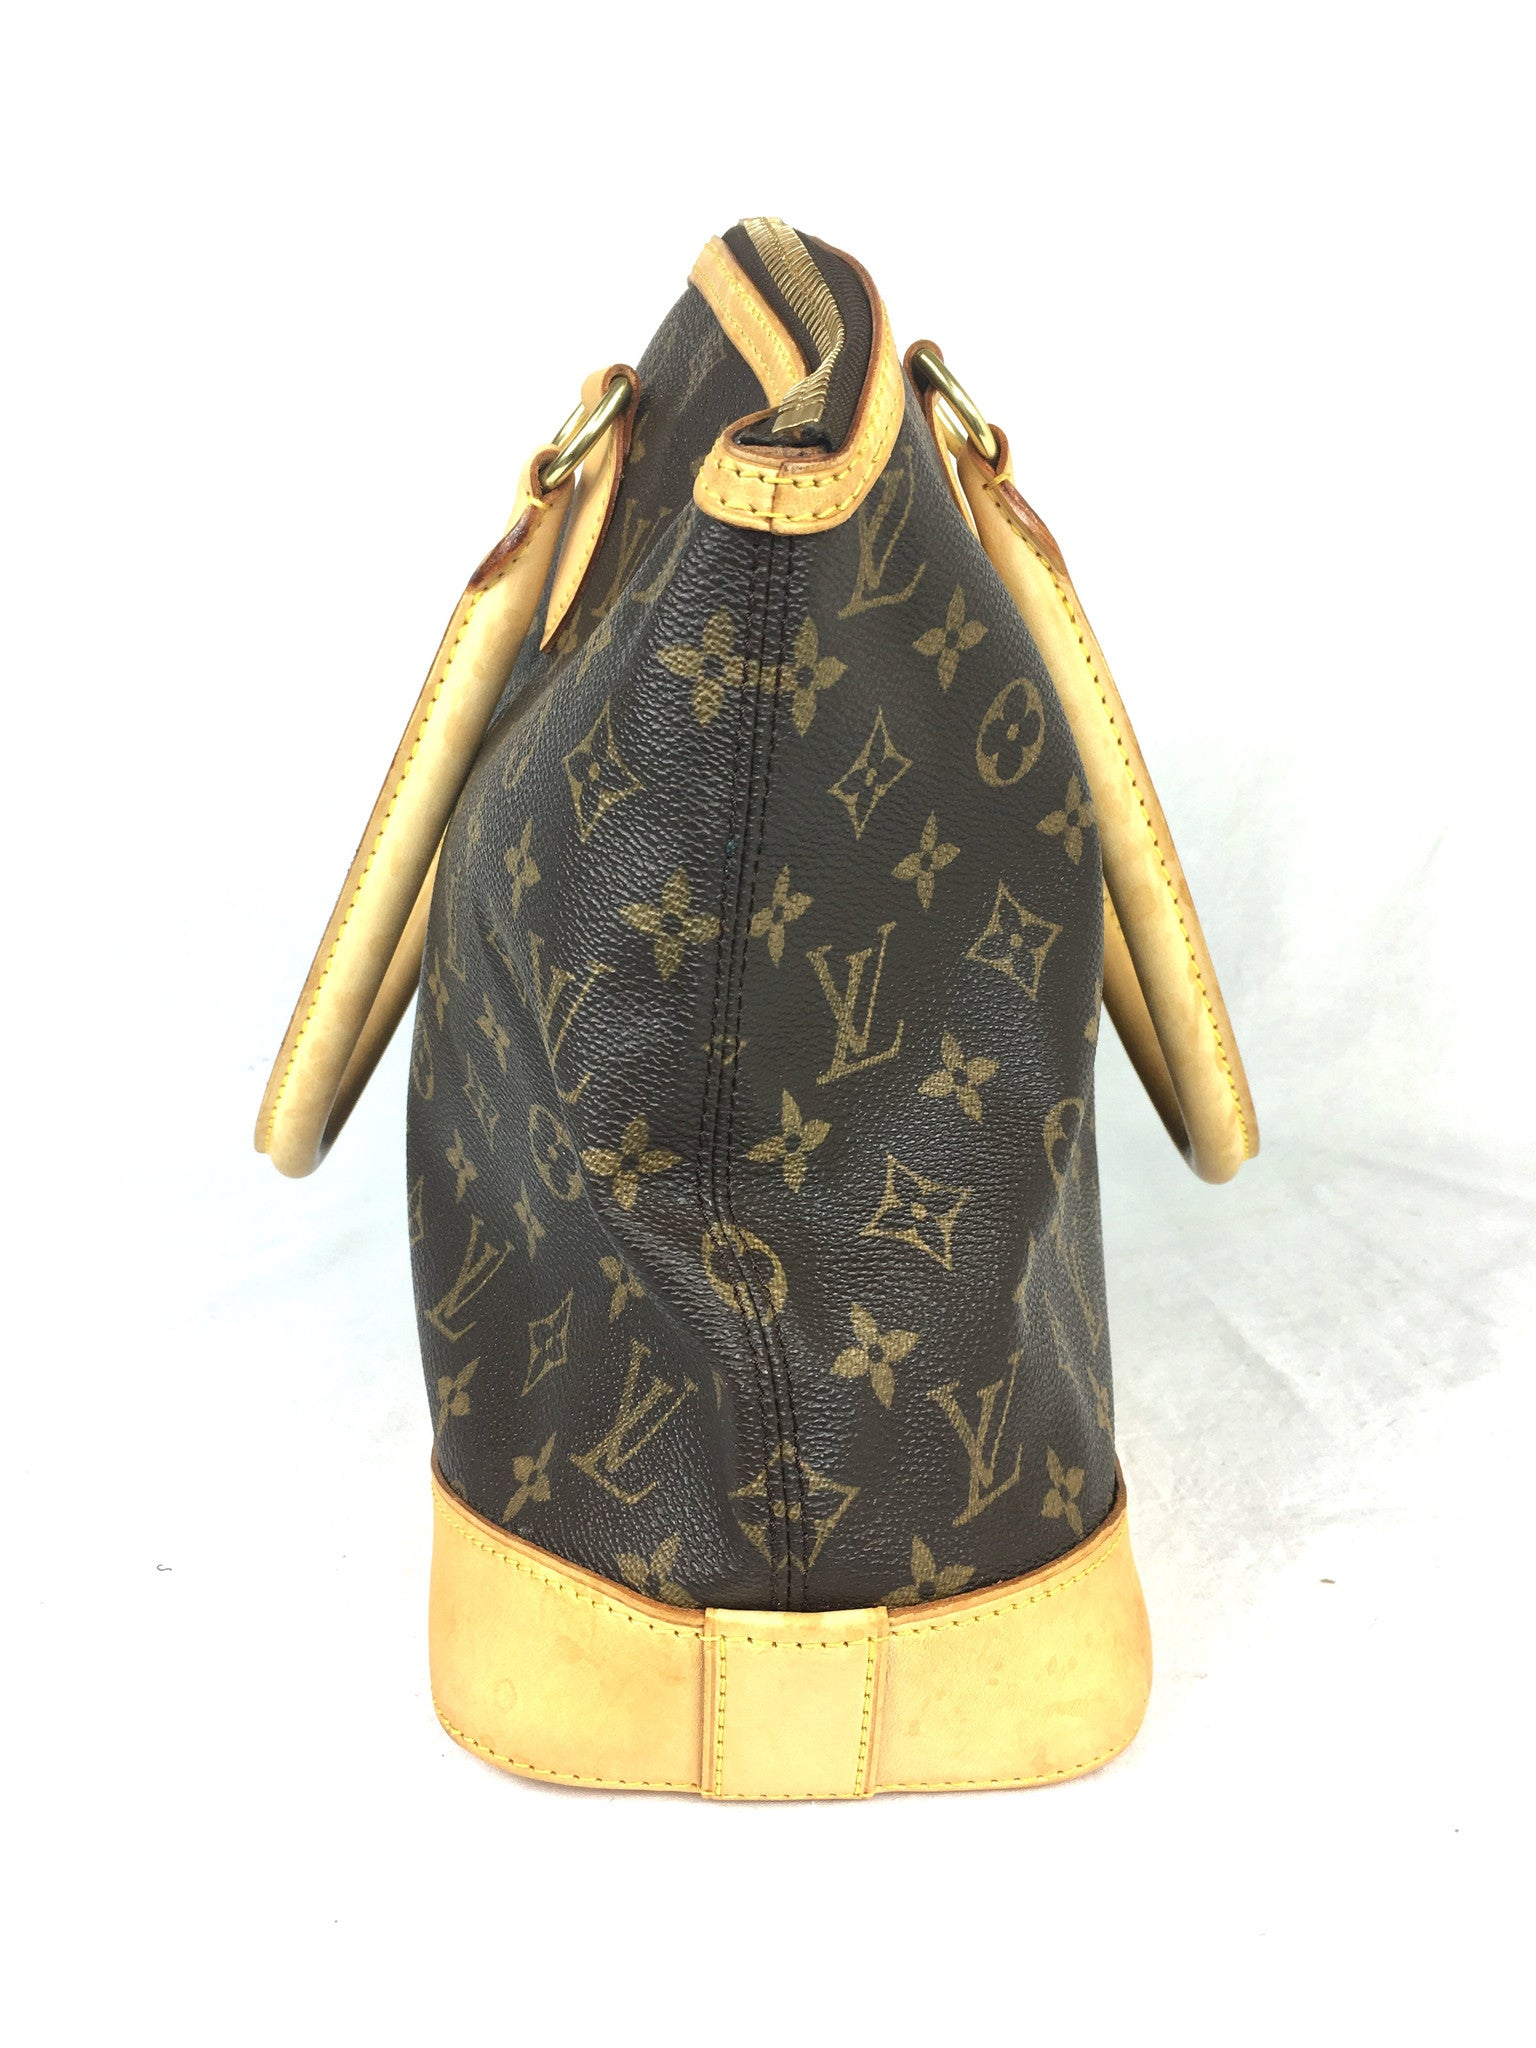 LOUIS VUITTON Monogram Lockit Horizontal Bag